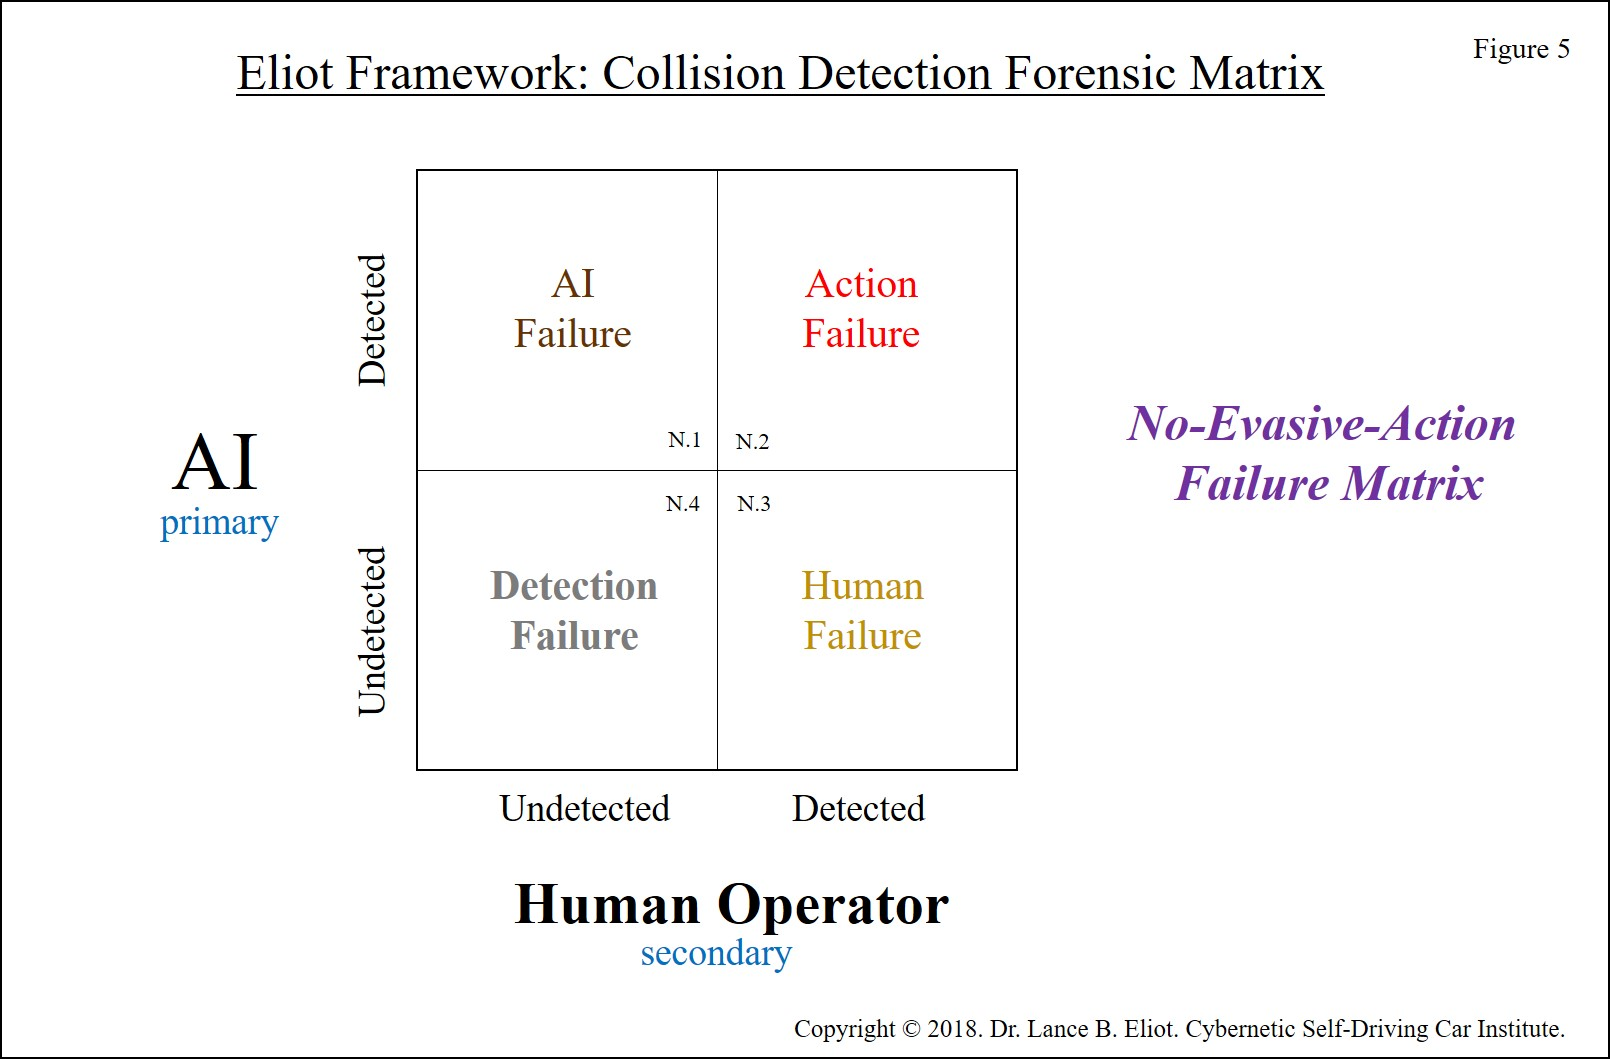 - Lance Eliot Uber Incident Figure 5 300 DPI - Initial Forensic Analysis of the Uber Self-Driving Car Incident in Arizona